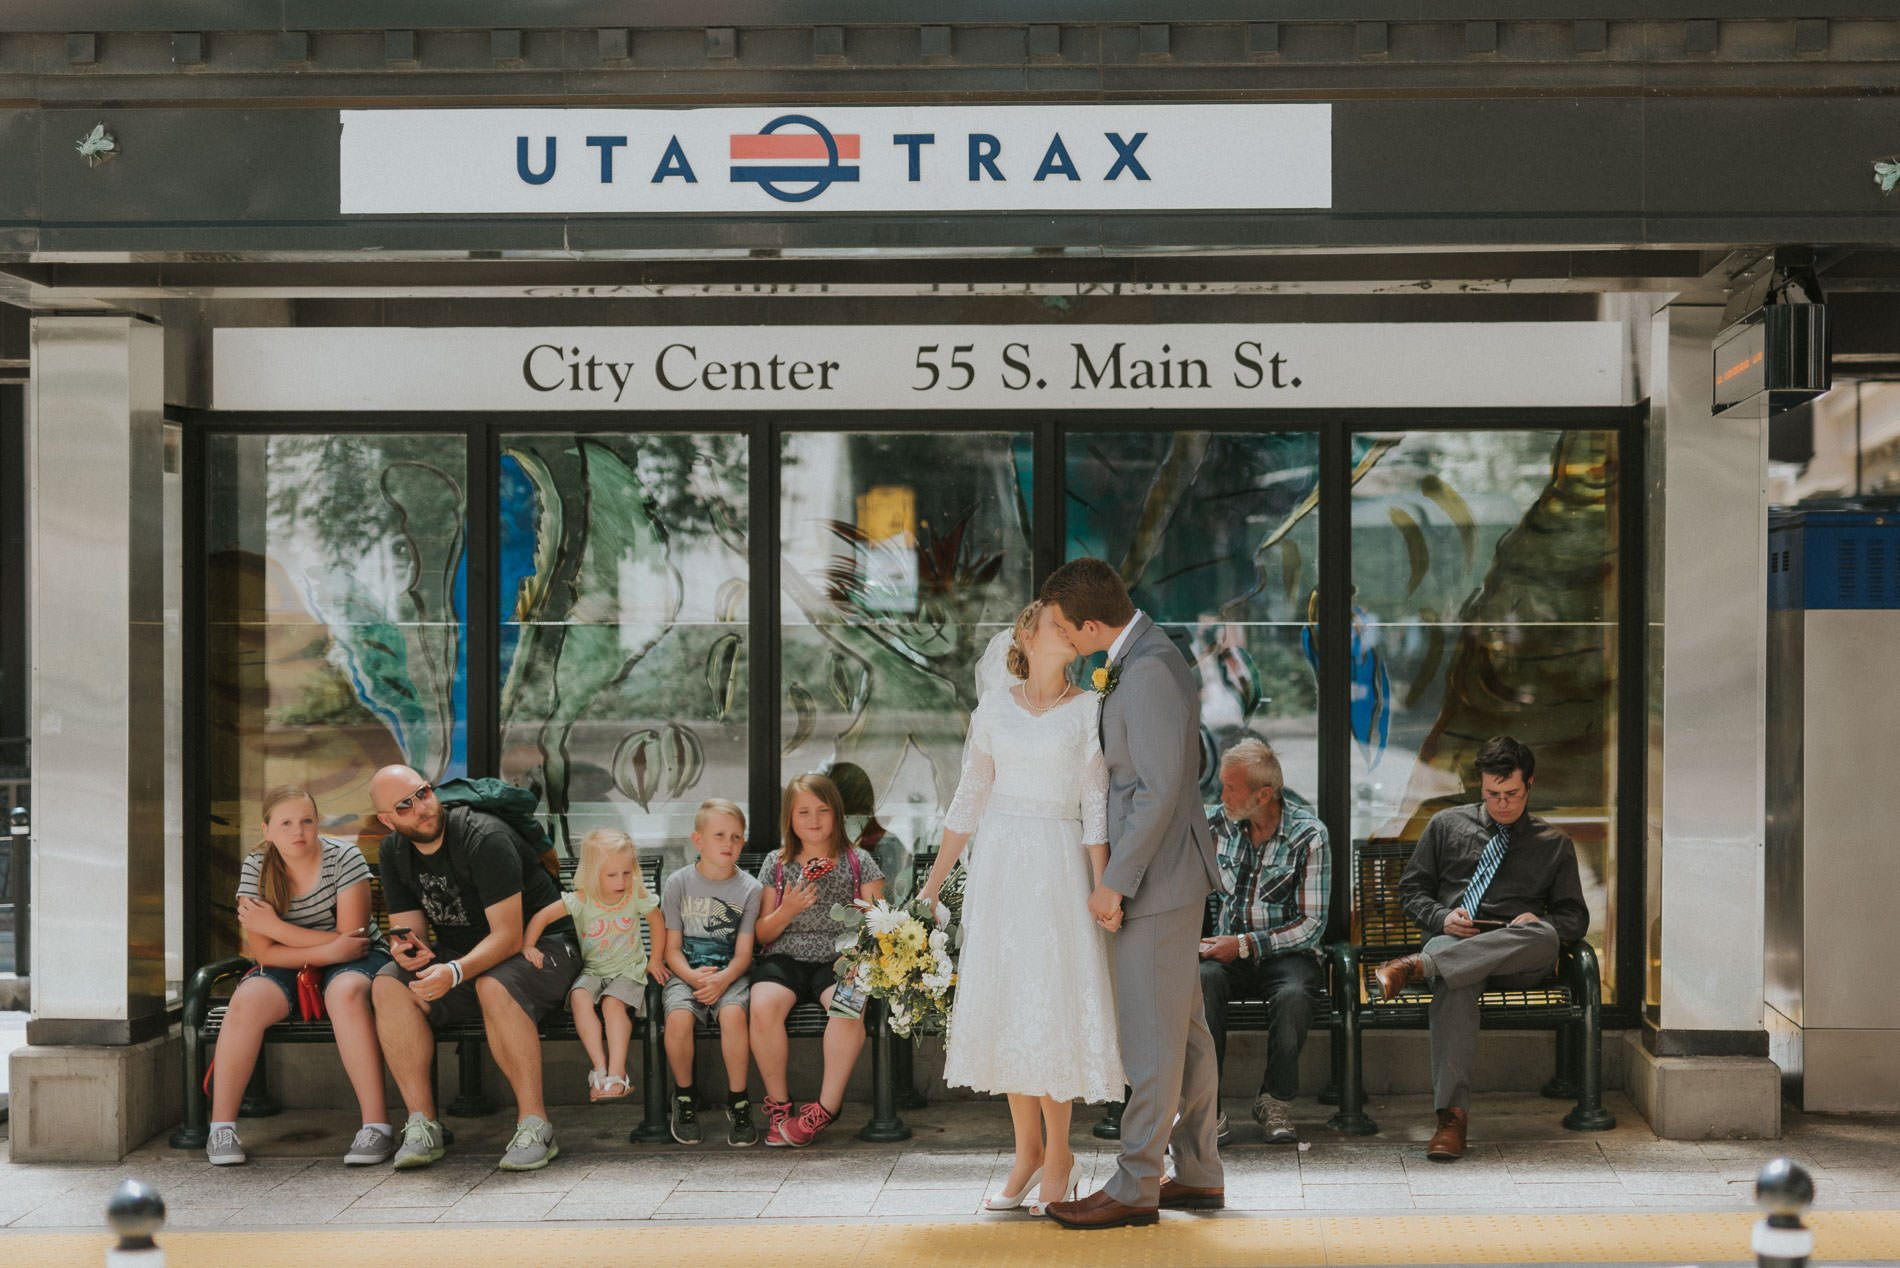 A bride and groom standing at a UTA Trax station kissing for Salt Lake City portrait photography